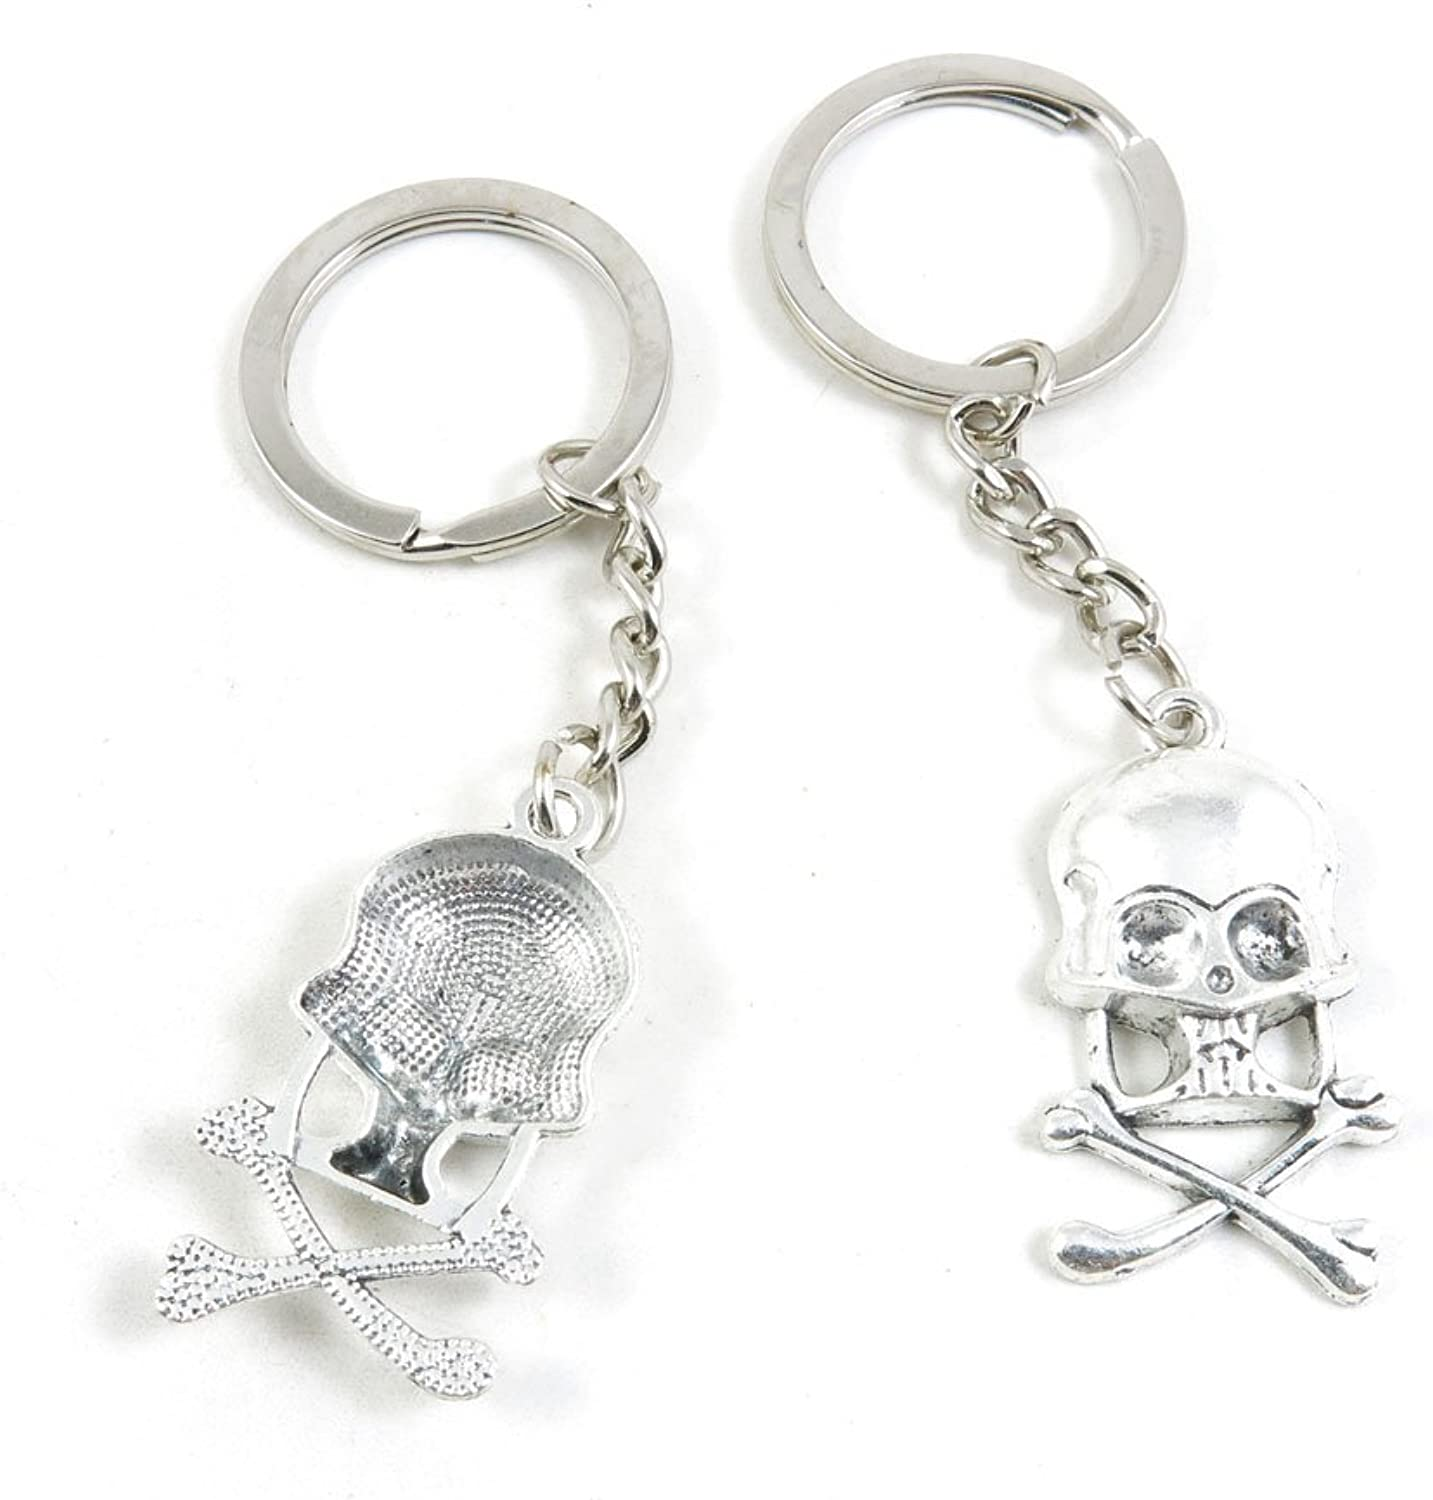 100 Pieces Keychain Keyring Door Car Key Chain Ring Tag Charms Bulk Supply Jewelry Making Clasp Findings J1JS3G Skull